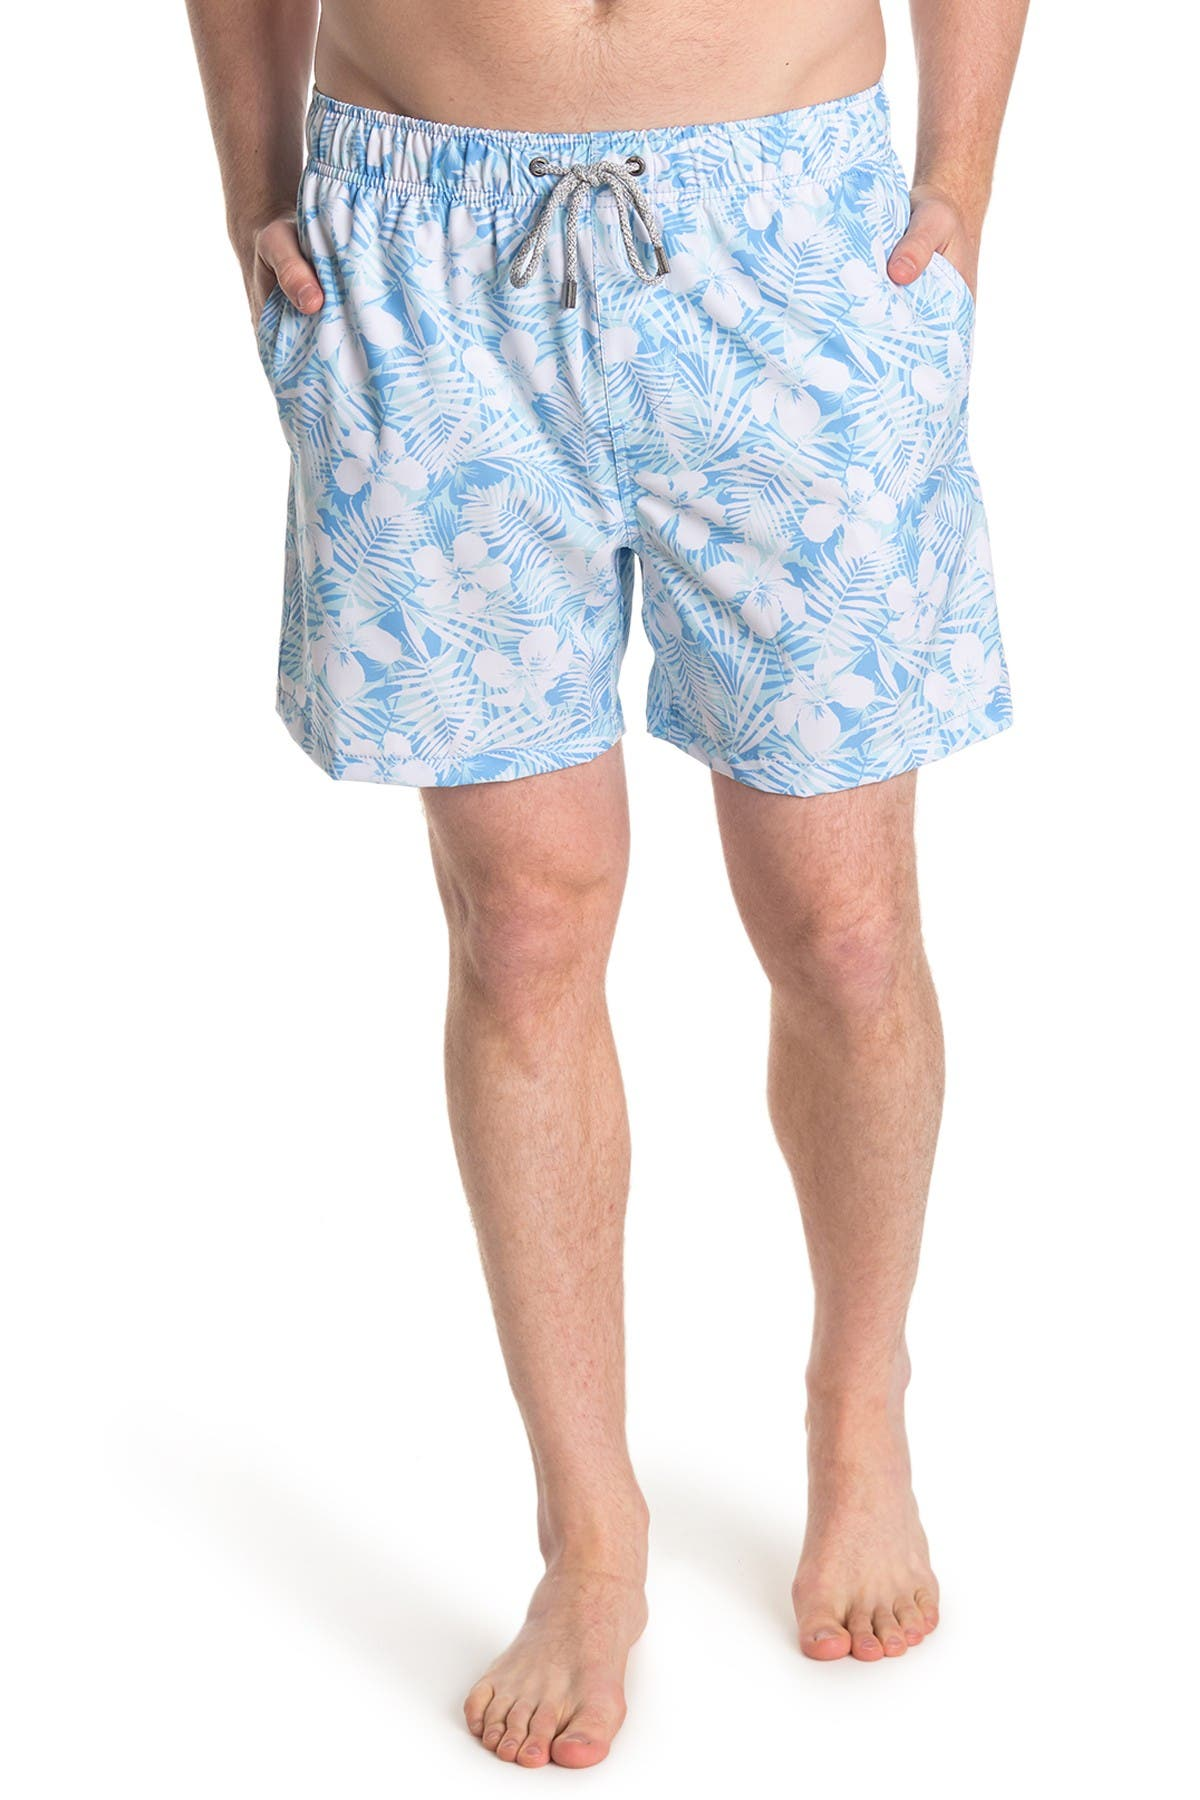 Image of Vintage Summer Tropical Print Swimming Trunks